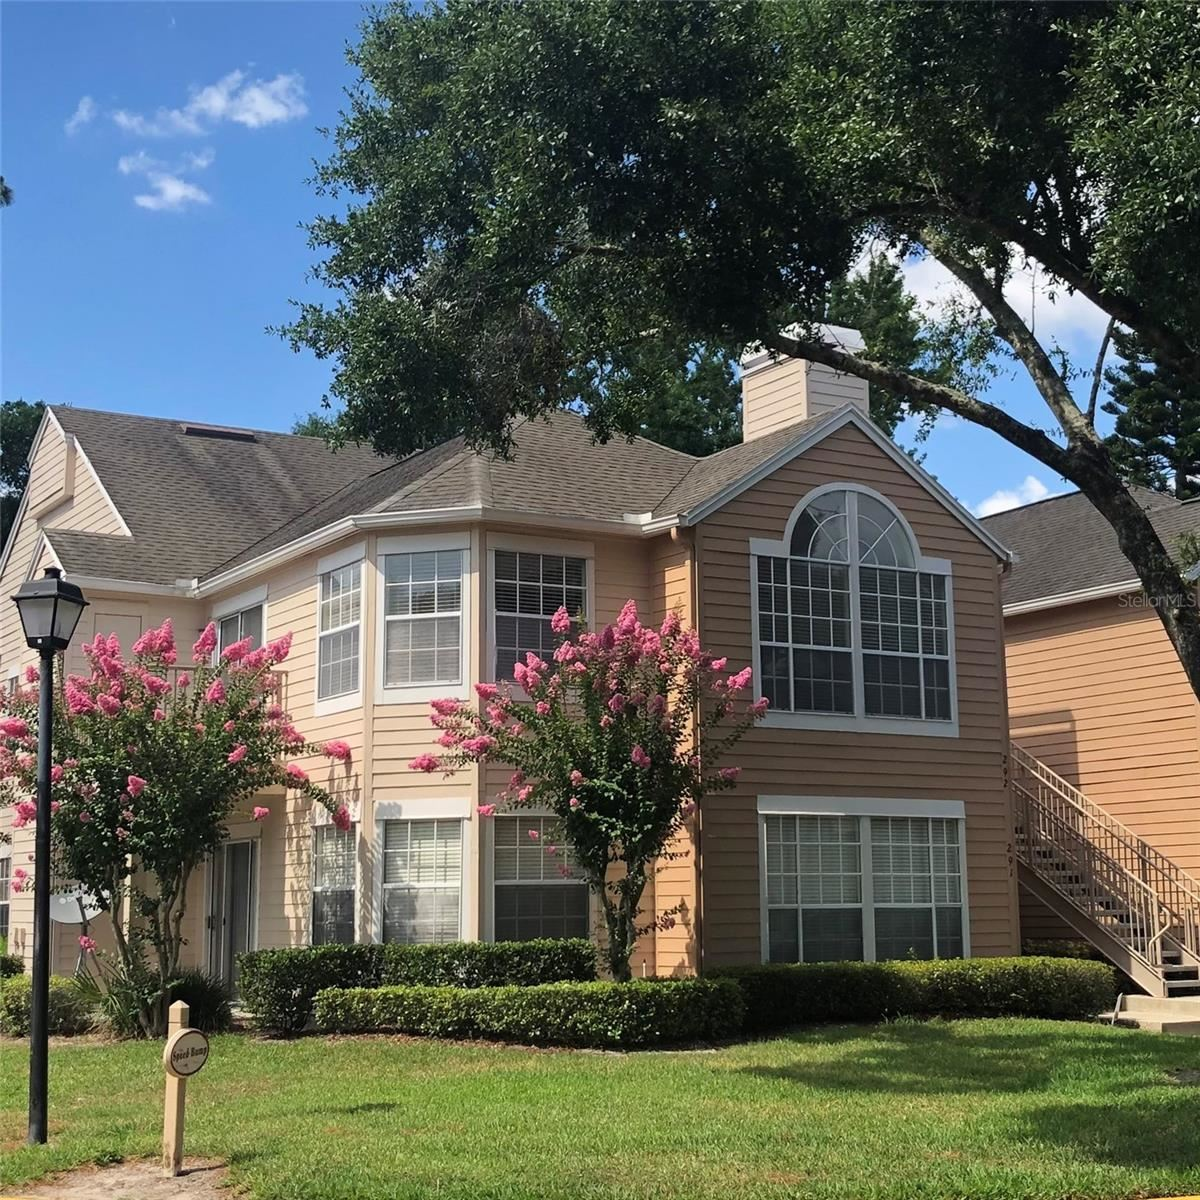 695 YOUNGSTOWN PARKWAY #292, Altamonte Springs, FL 32714 - #: O5951115